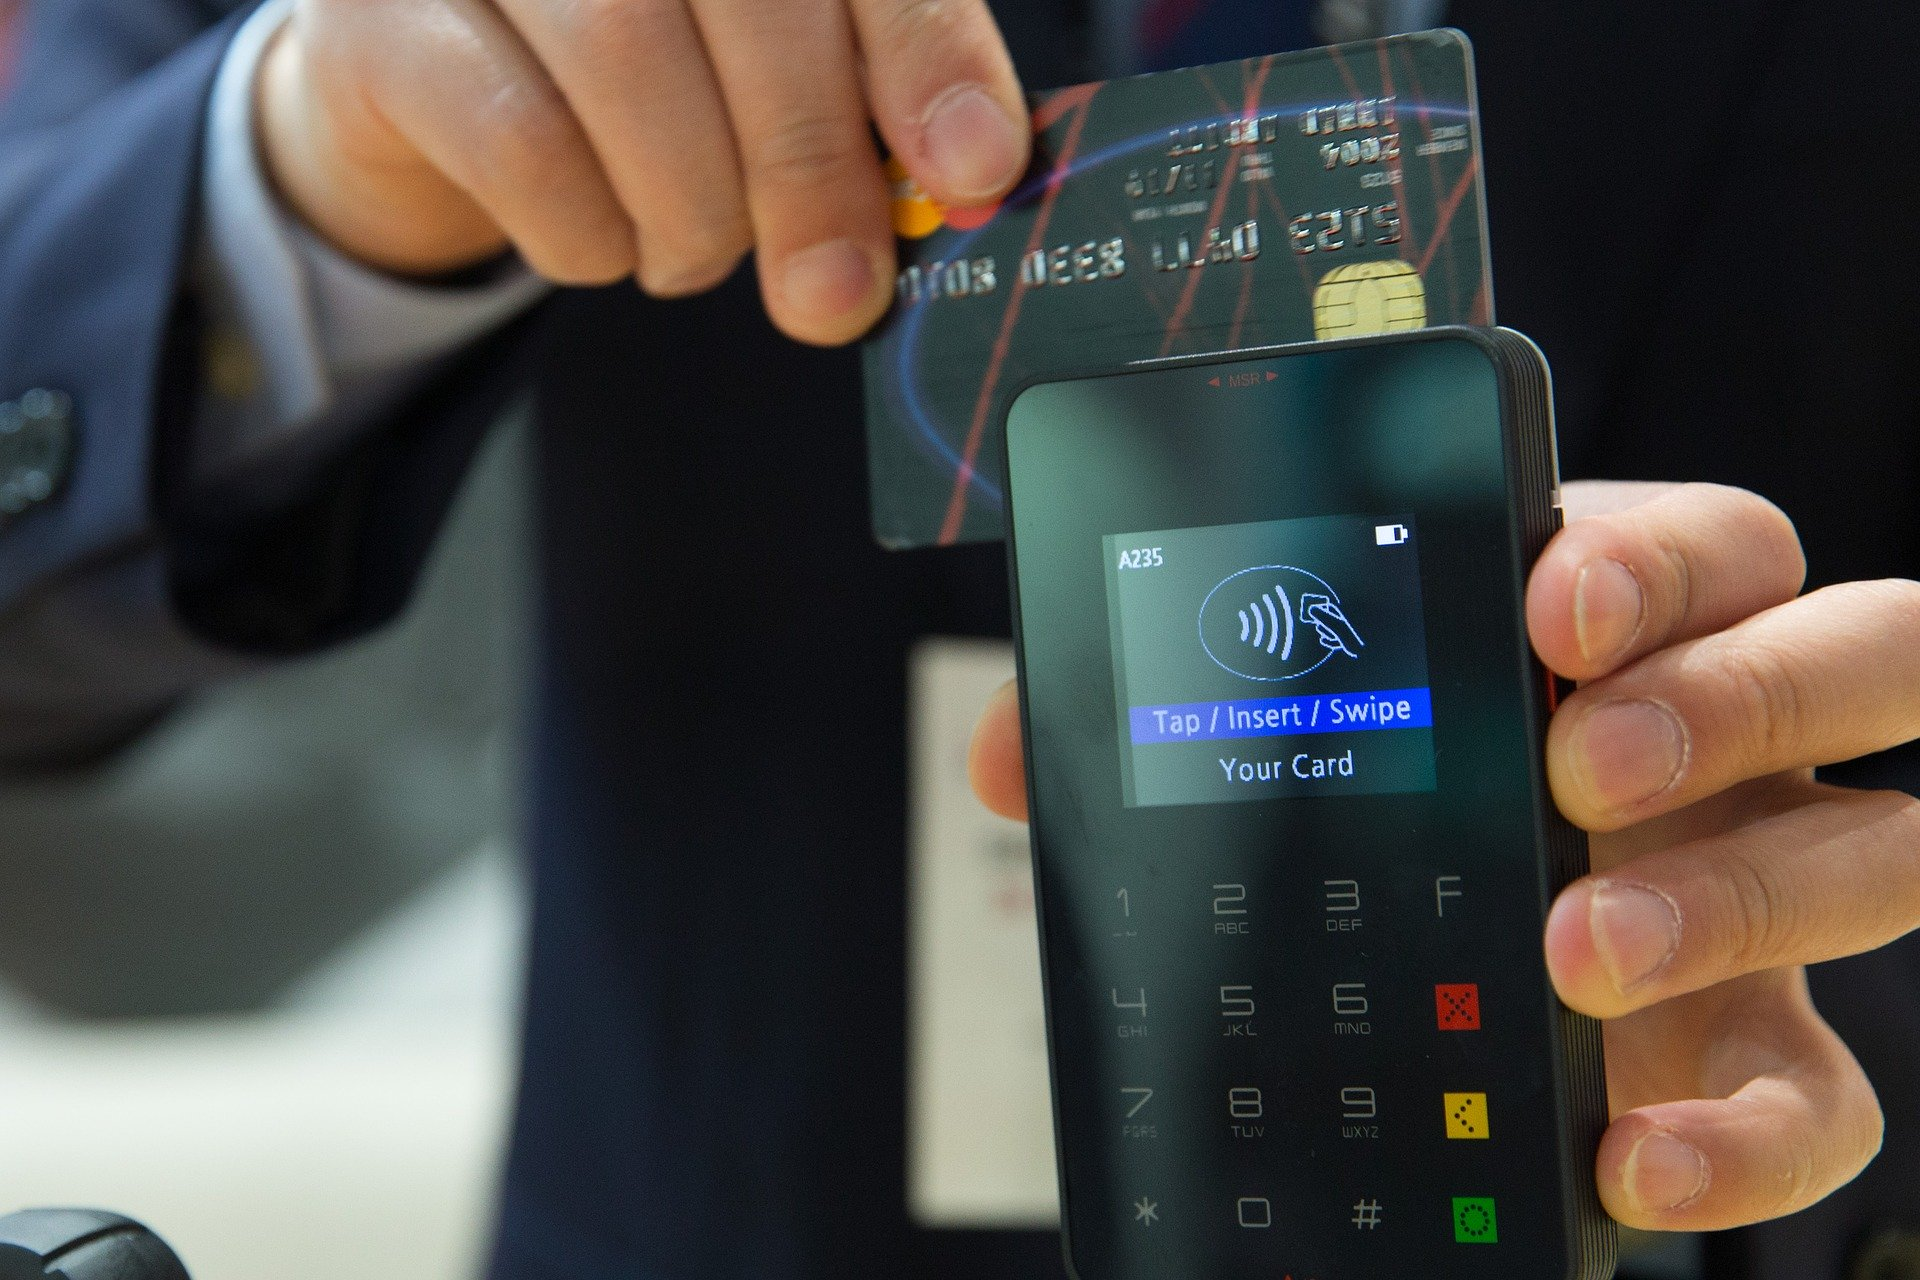 The first transaction using Visa EMV 3D-Secure 2 was made in Russia